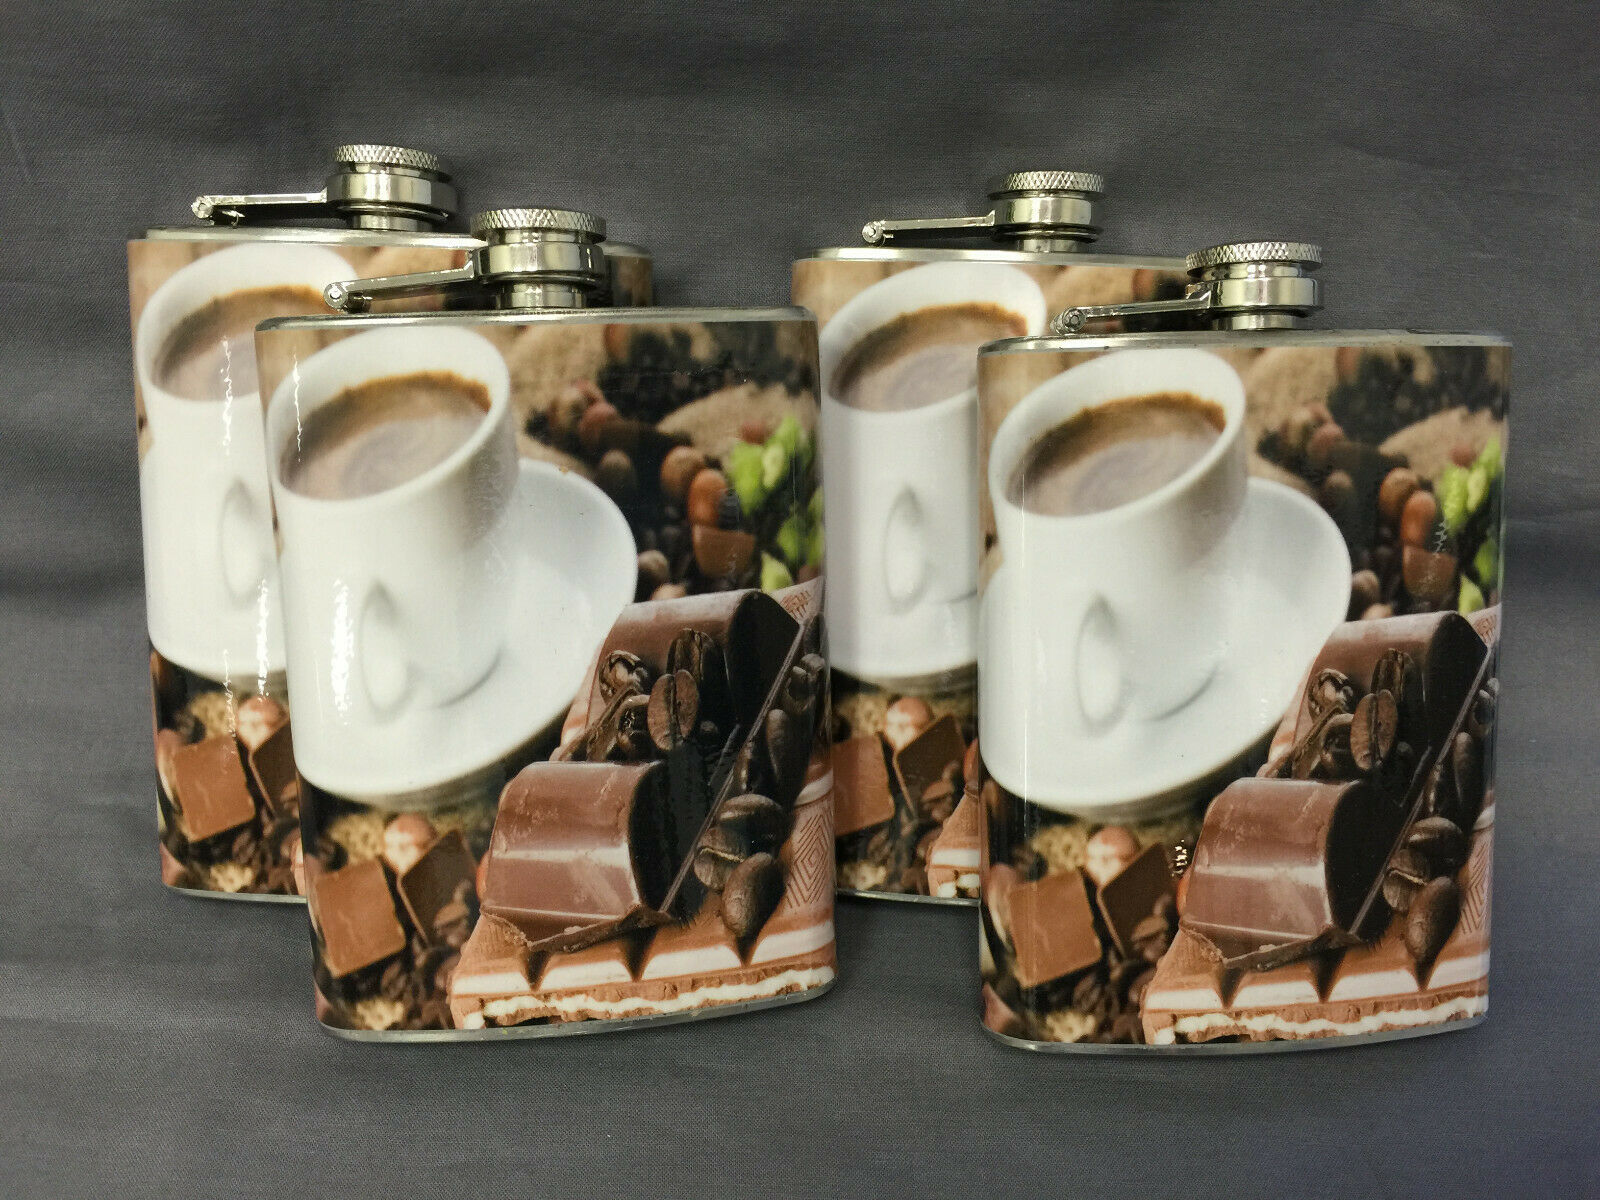 Set of 4 Coffee Mocha Cafe Flasks 8oz Stainless Steel Hip Drinking Whiskey